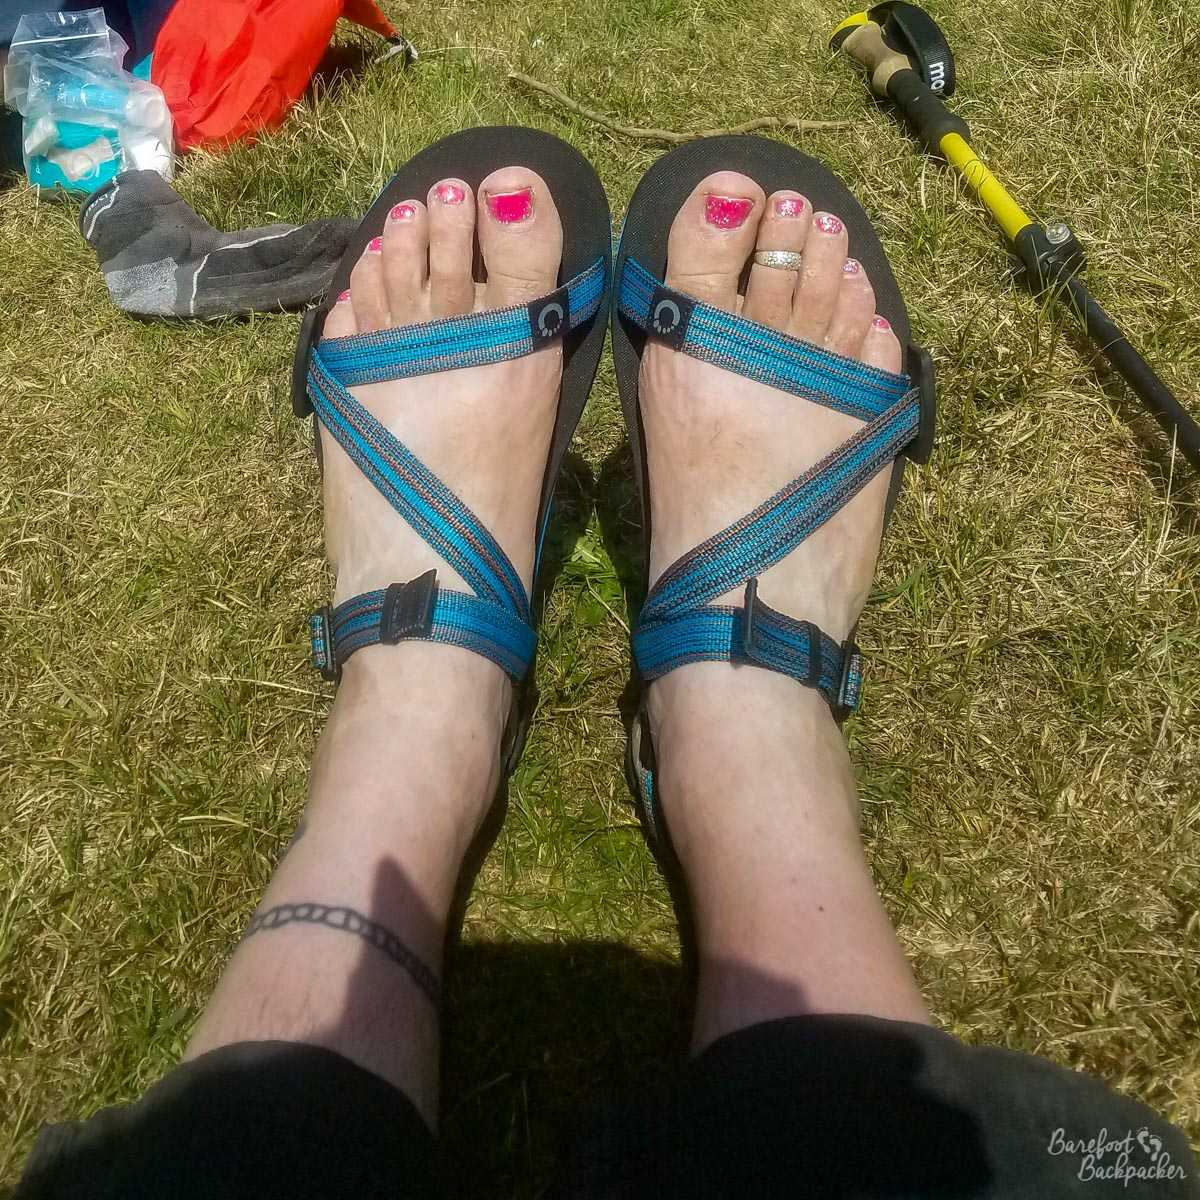 My feet in a pair of Xero sandals, taken somewhere on the Norfolk Coast Path, in England. The rubber upper sole of the sandal is smooth and black rubber, and the straps holding my feet in place are a mottled blue.